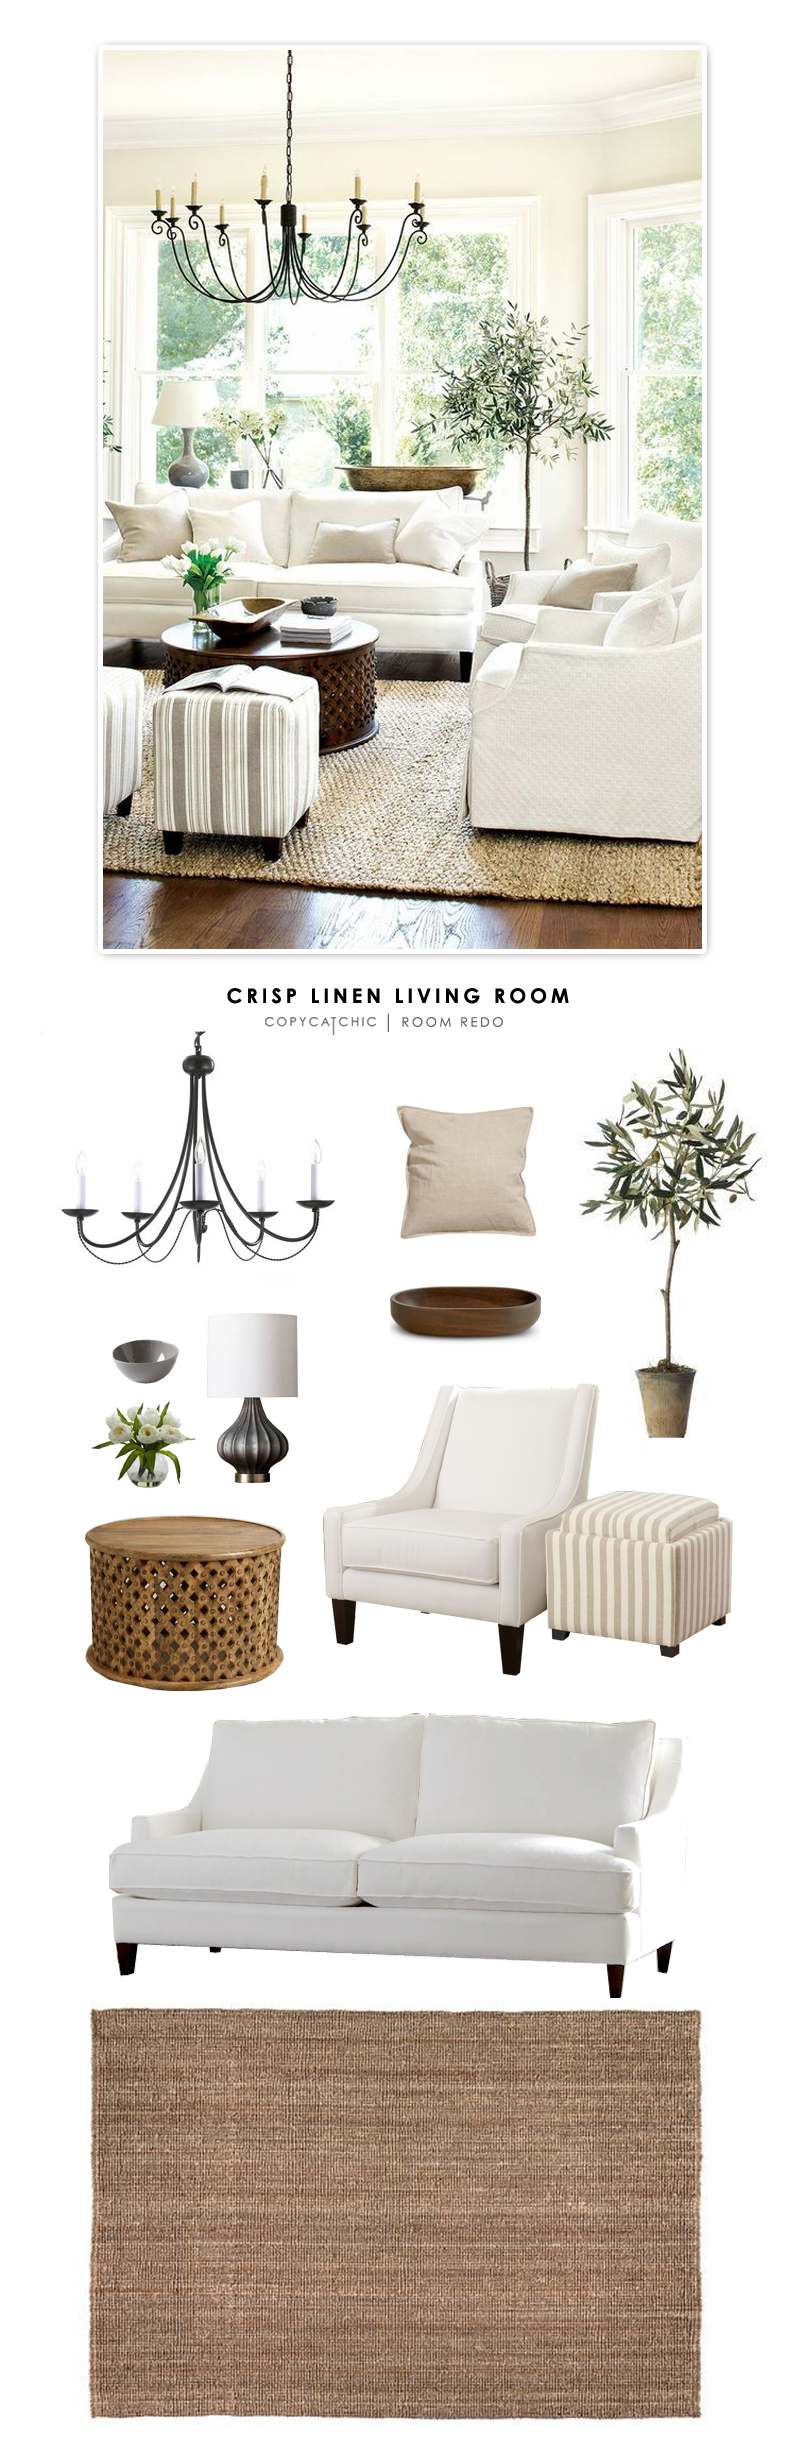 Copy Cat Chic Room Redo Crisp Linen Living Room copycatchic